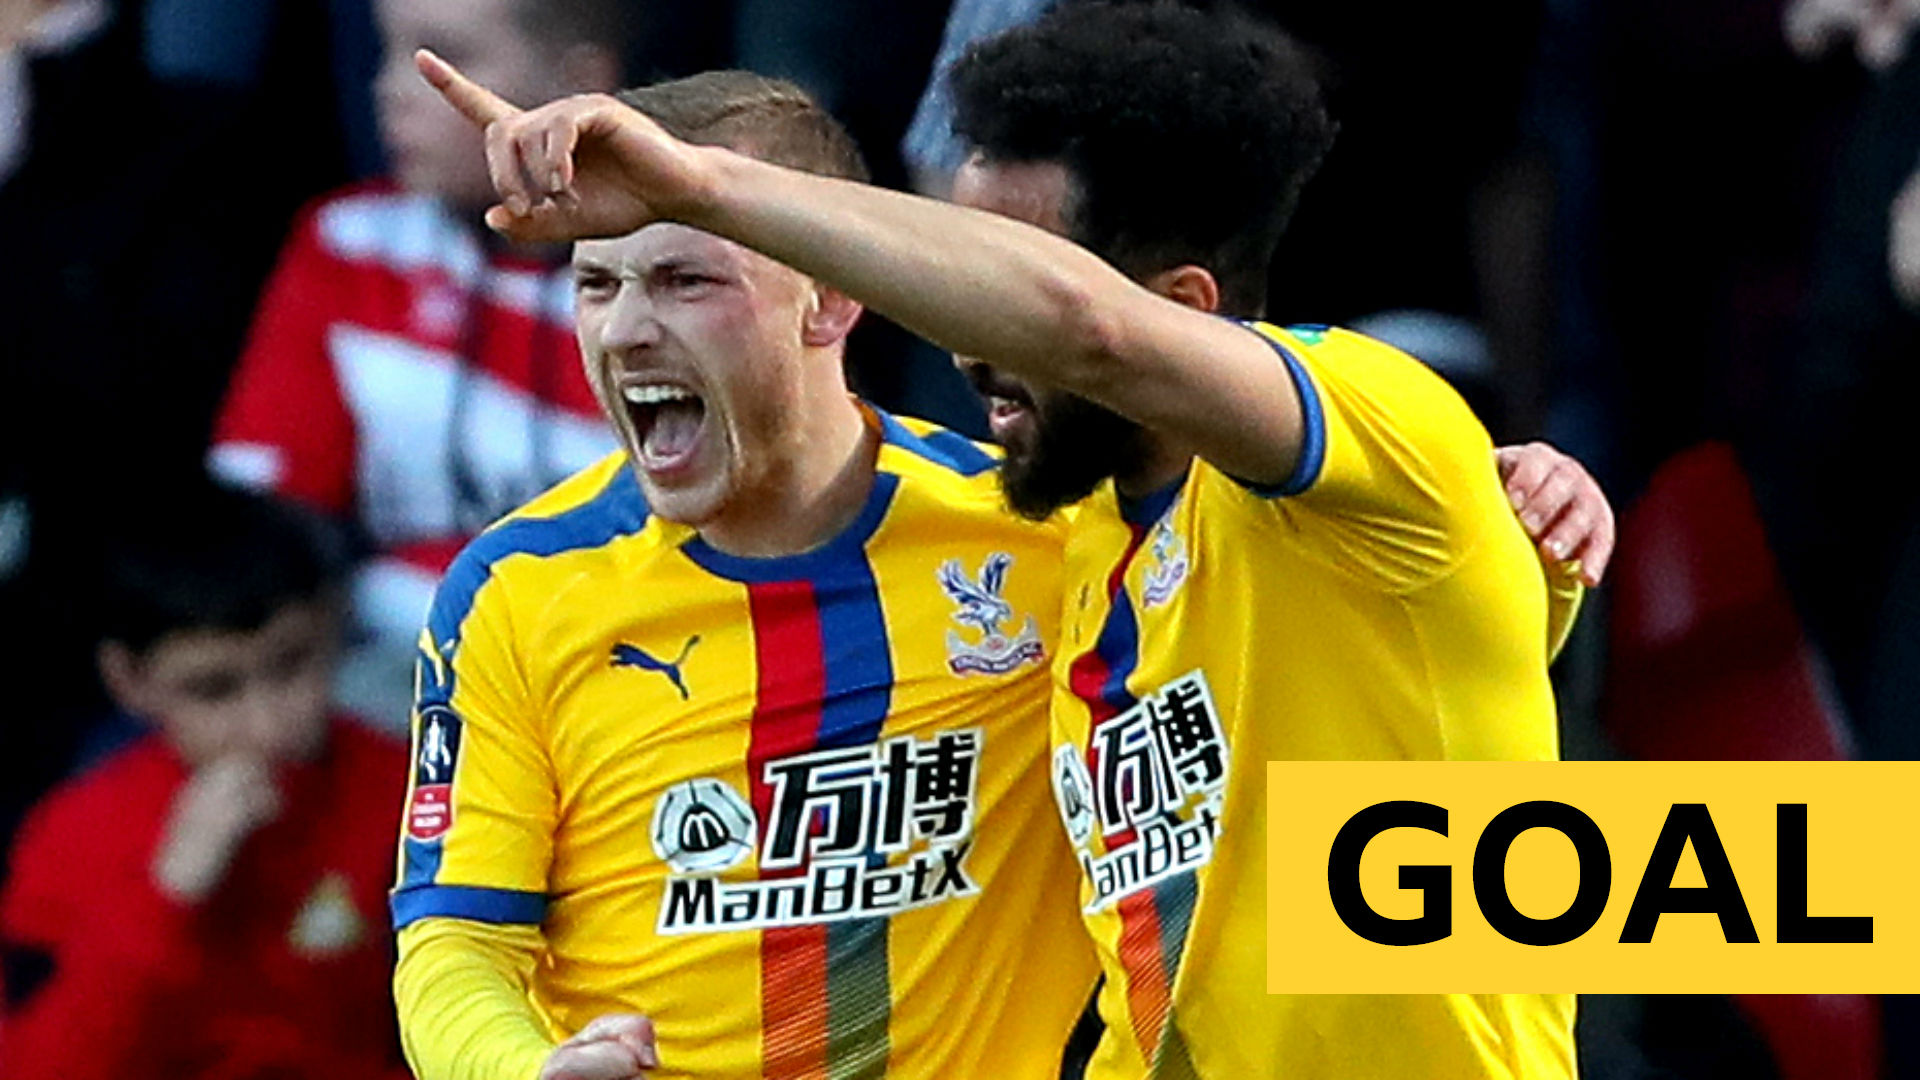 FA Cup: Crystal Palace's Max Meyer scores second goal against Doncaster Rovers